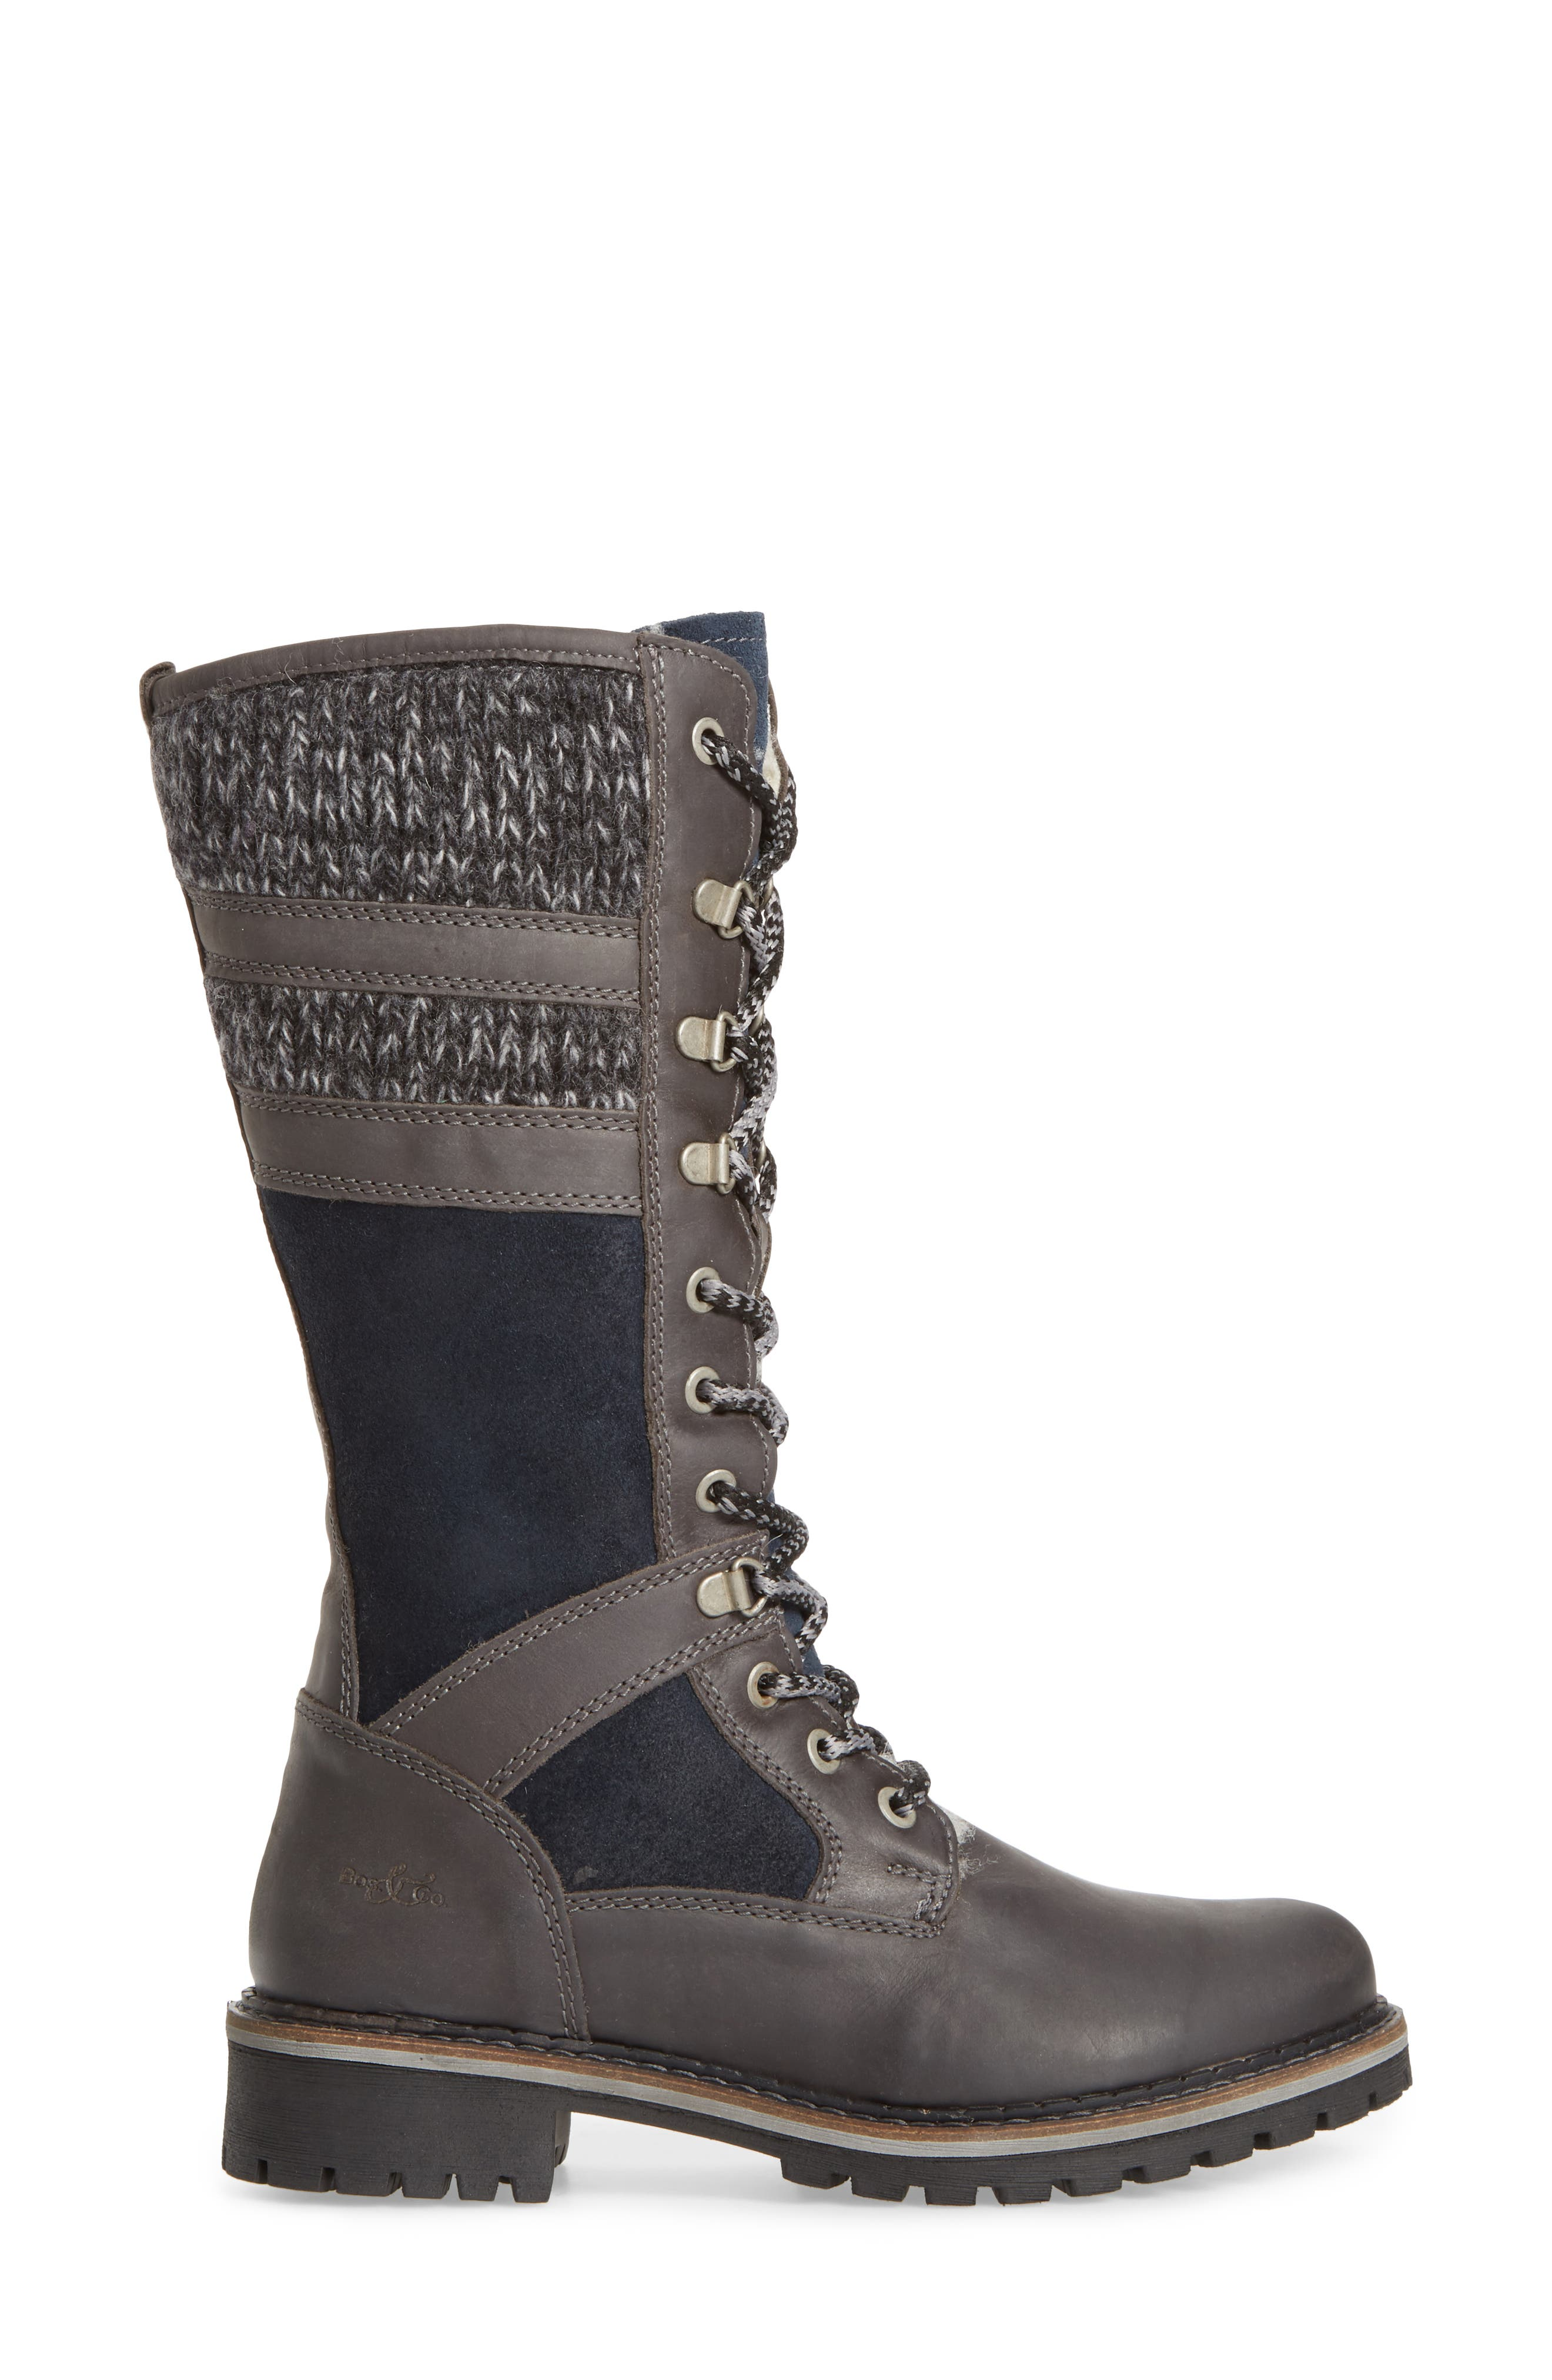 Holding Waterproof Boot,                             Alternate thumbnail 3, color,                             020